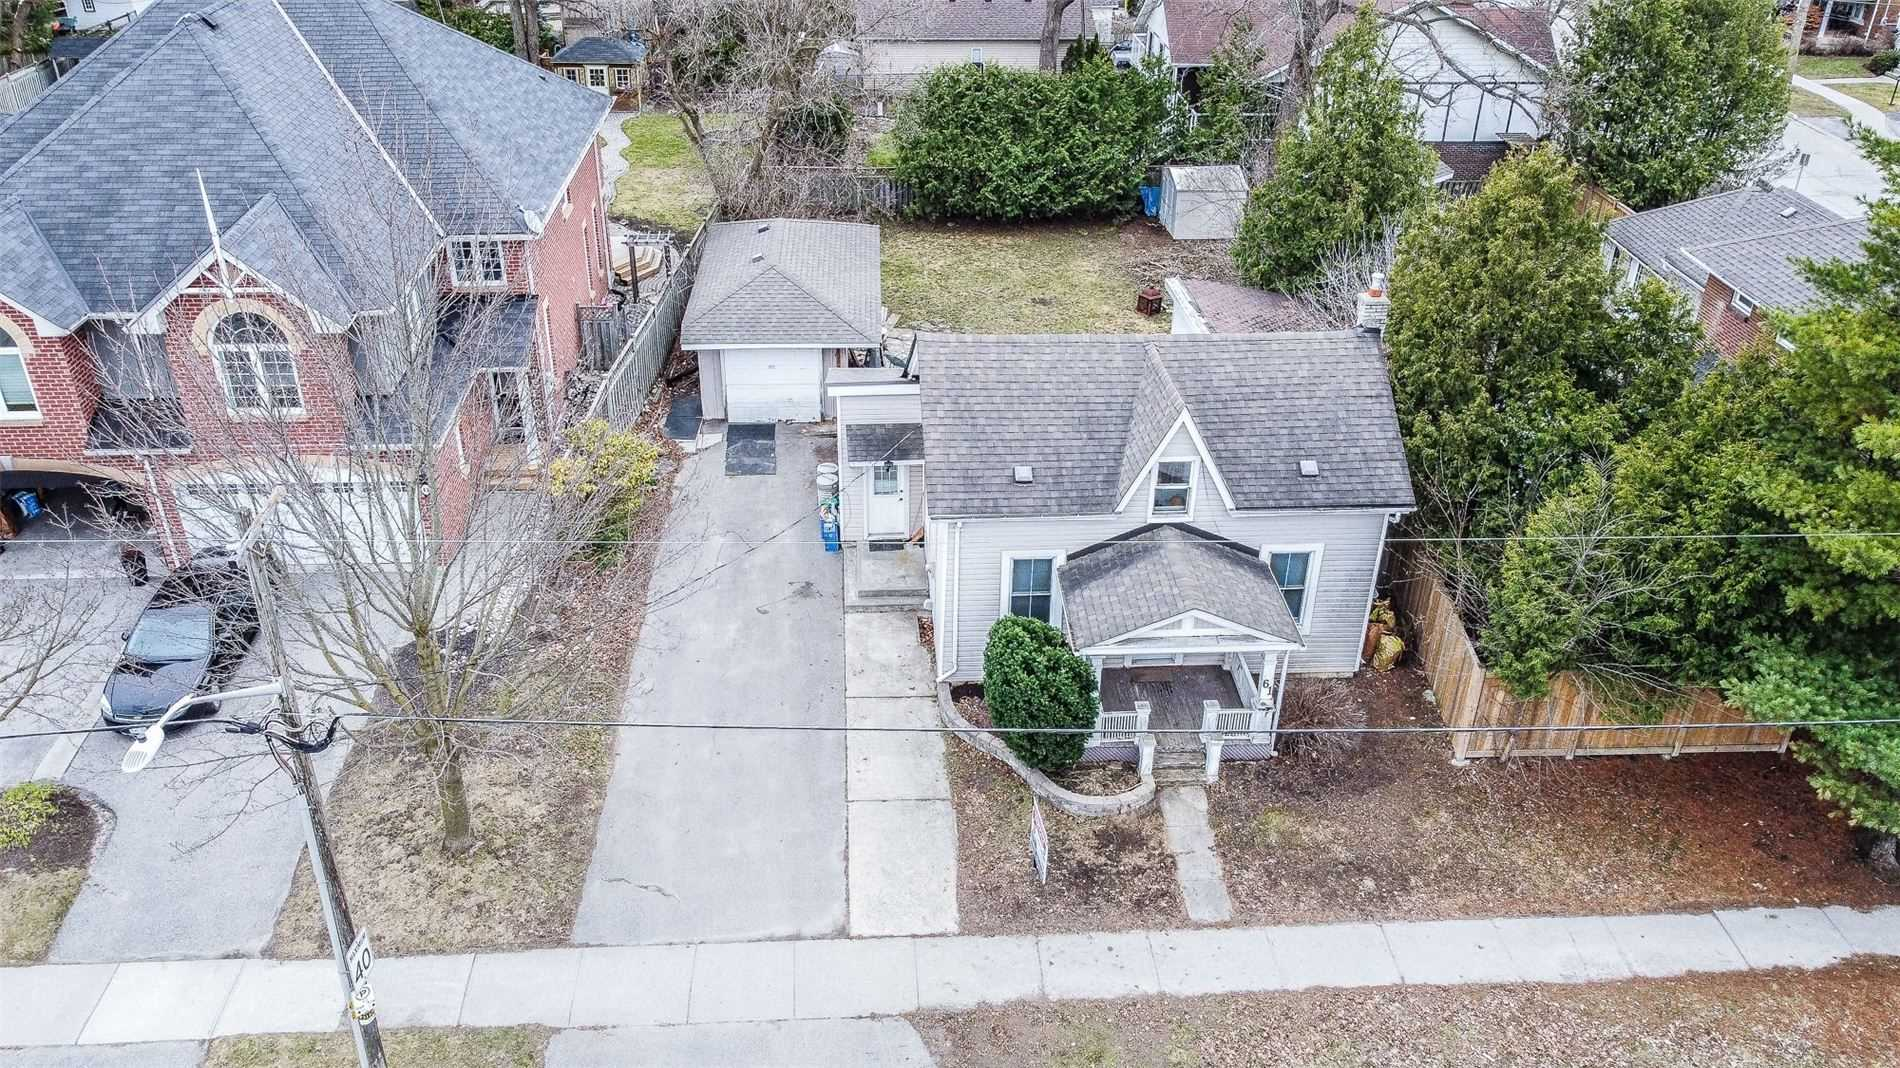 Detached house For Sale In Aurora